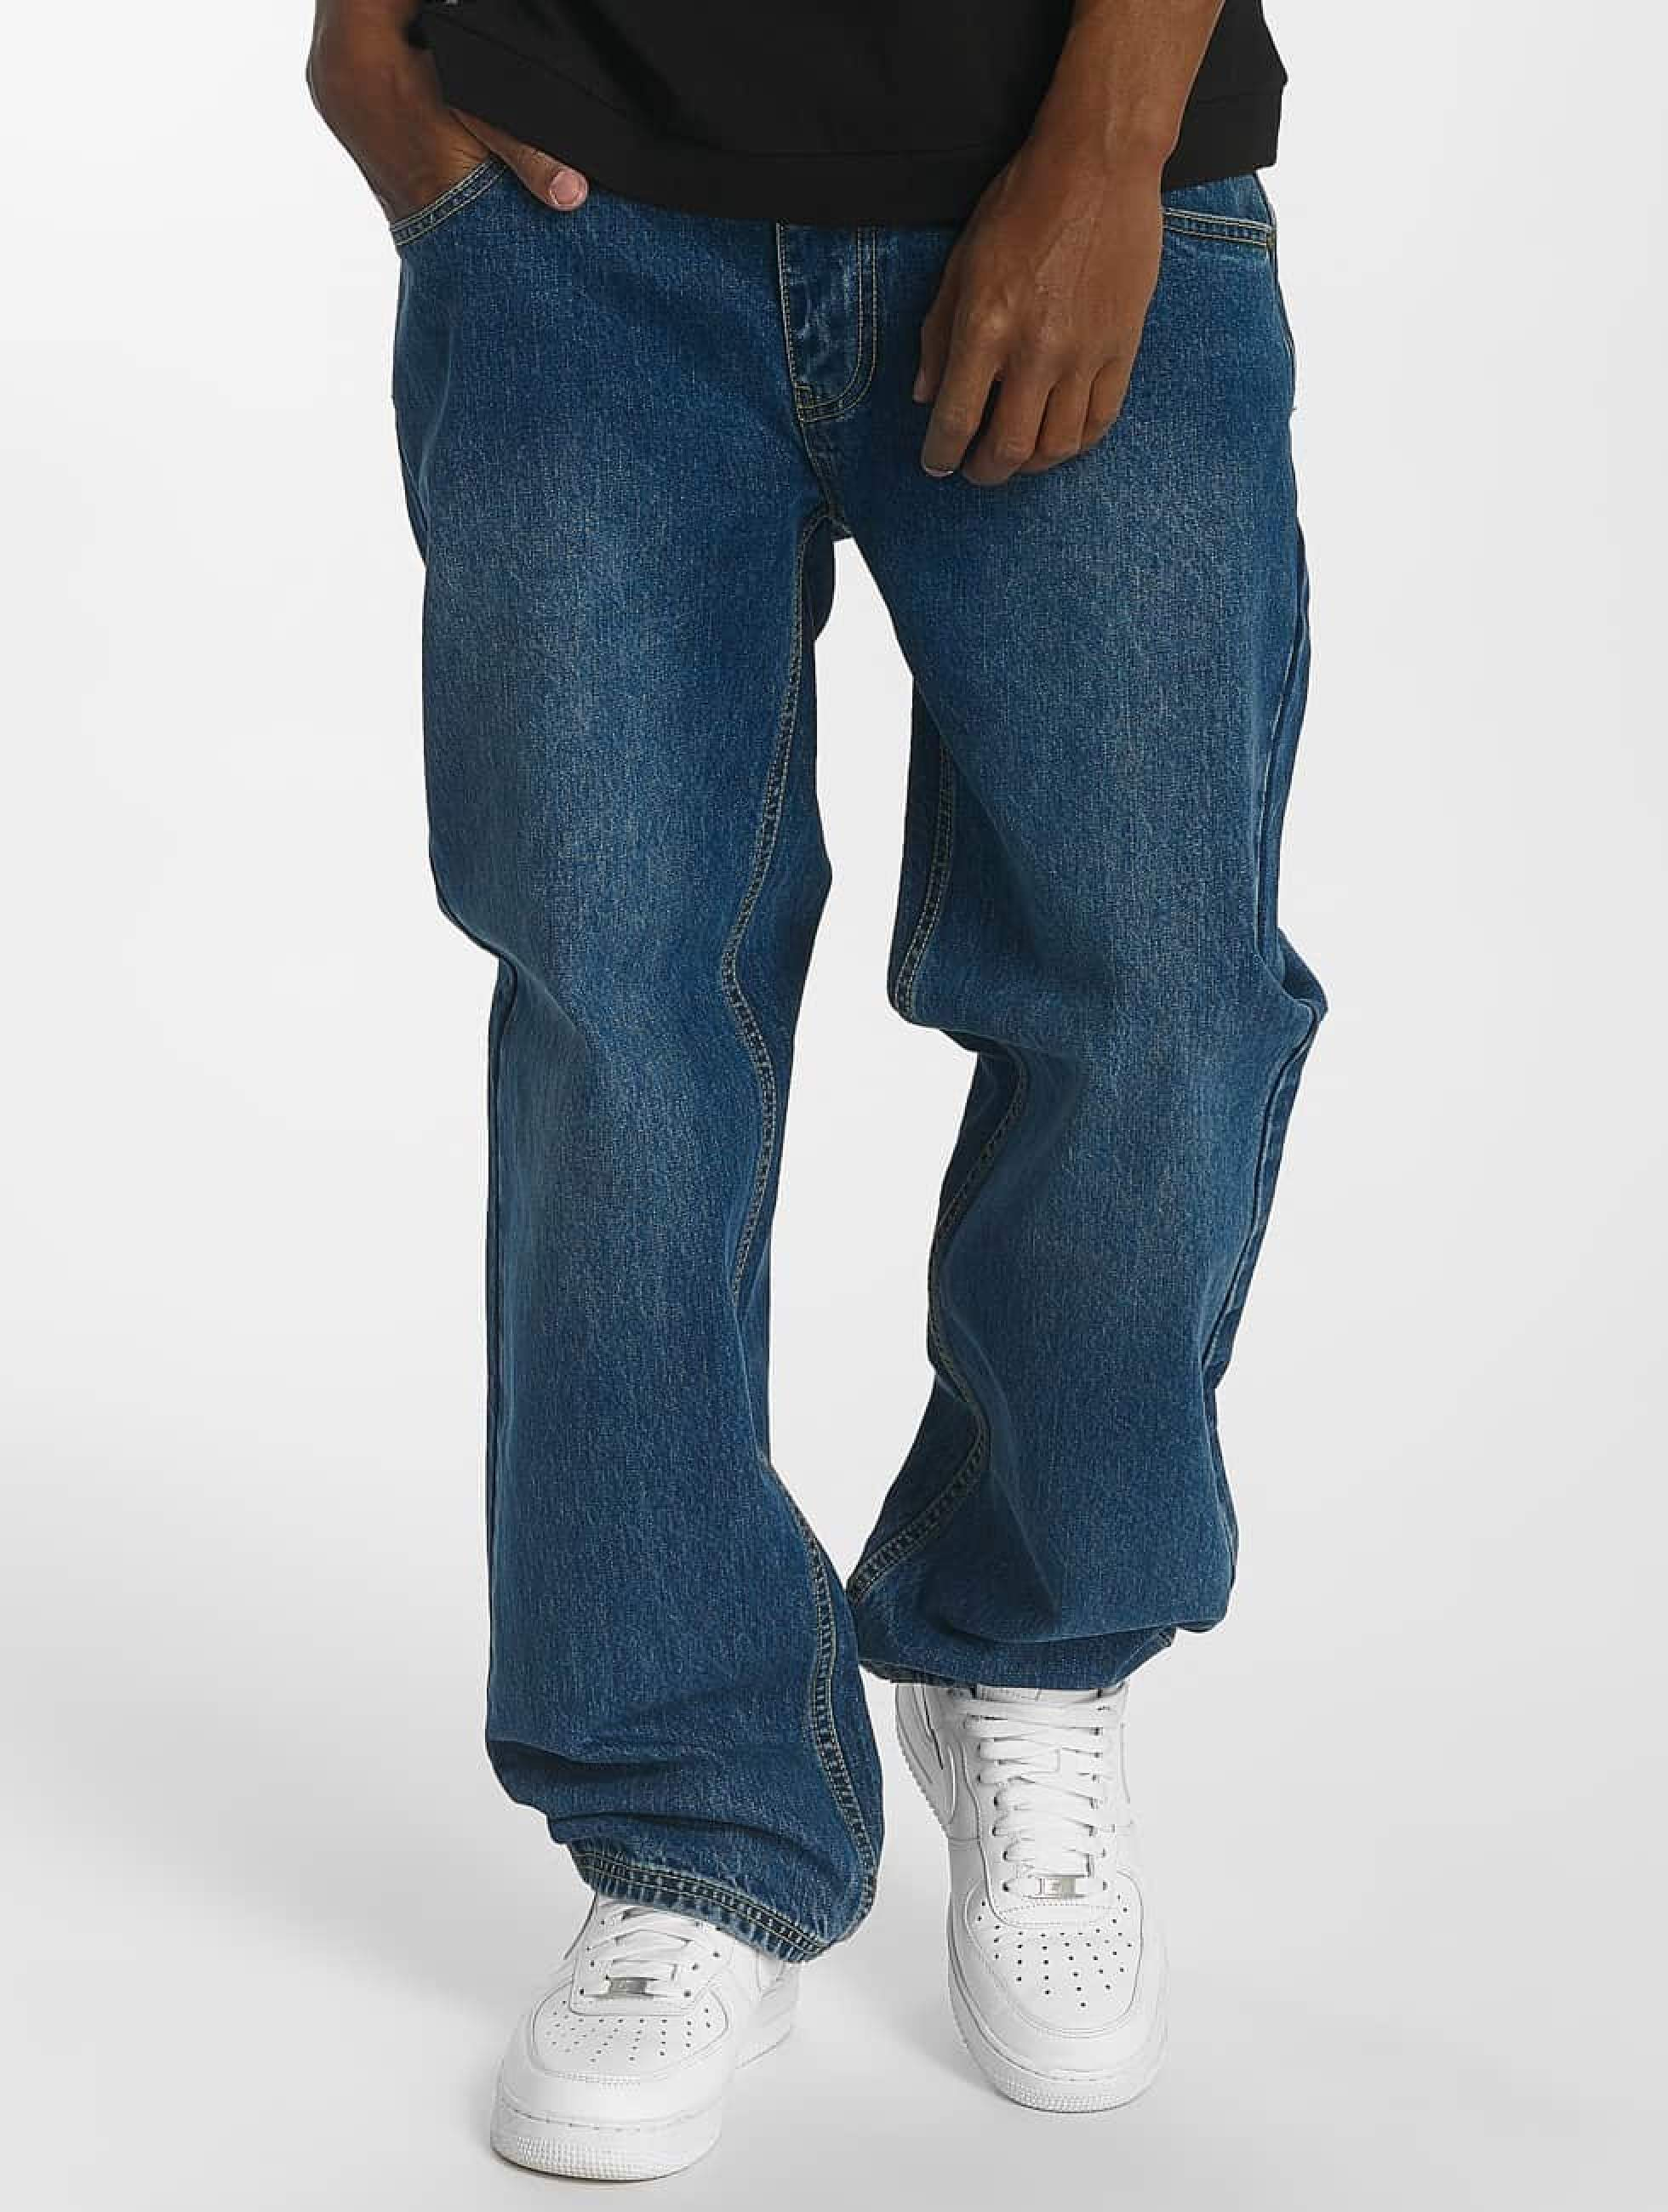 Ecko Unltd. / Loose Fit Jeans Gordon's Lo Loose Fit in blue W 36 L 34